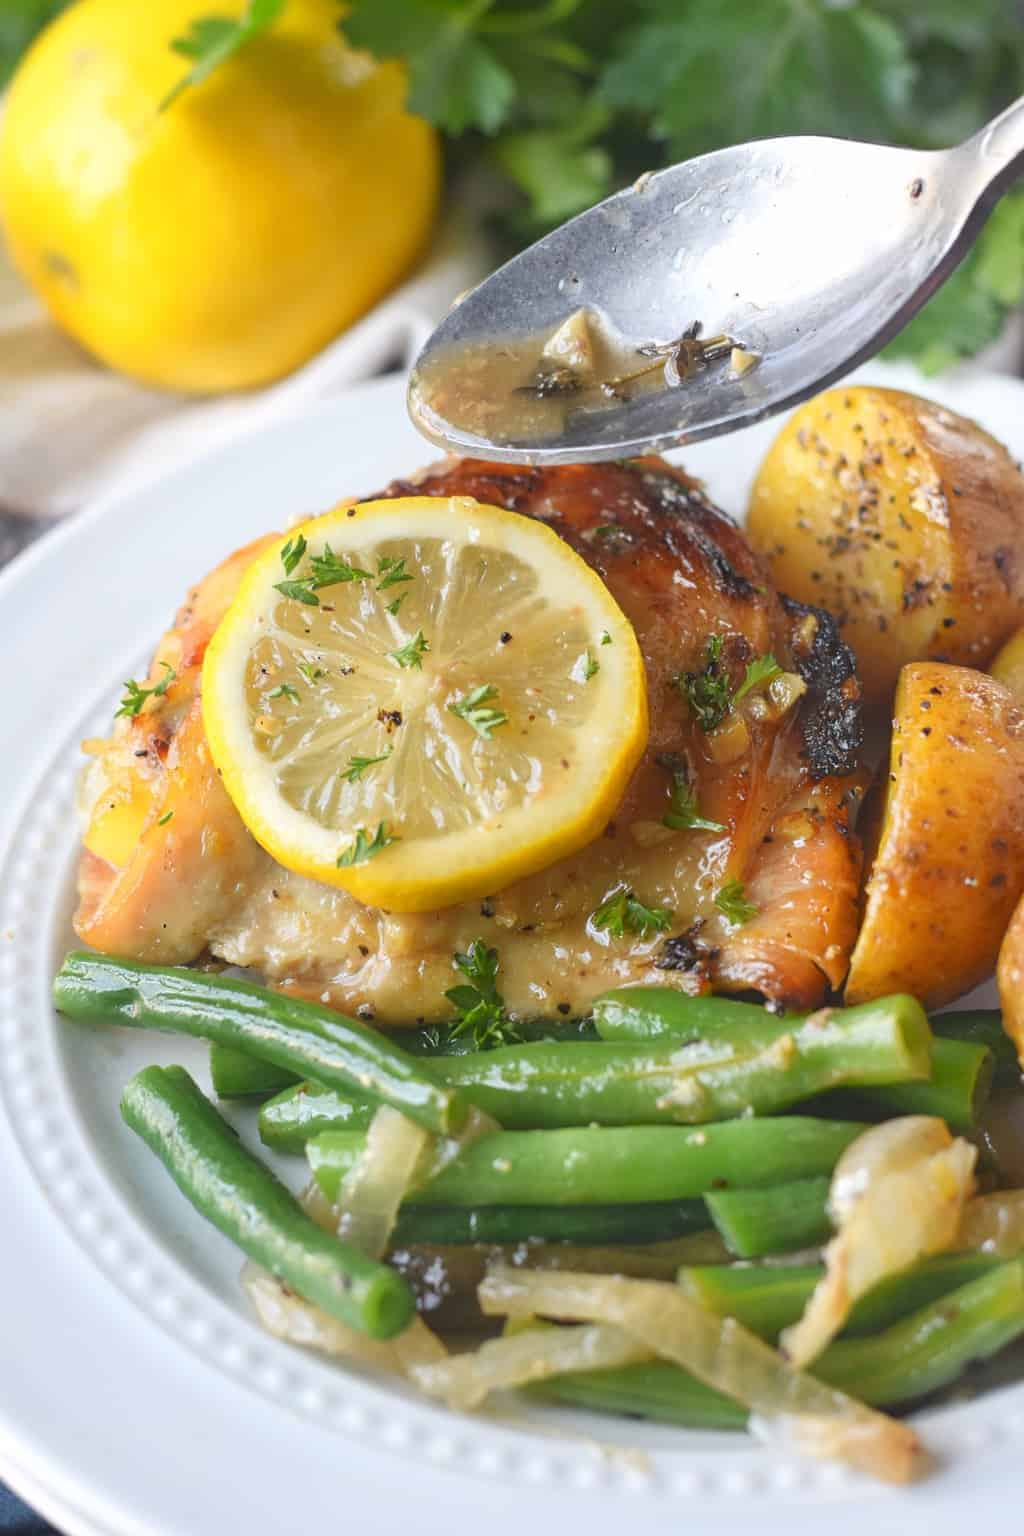 Chicken thigh with a side of potatoes and green beans on a white plate.